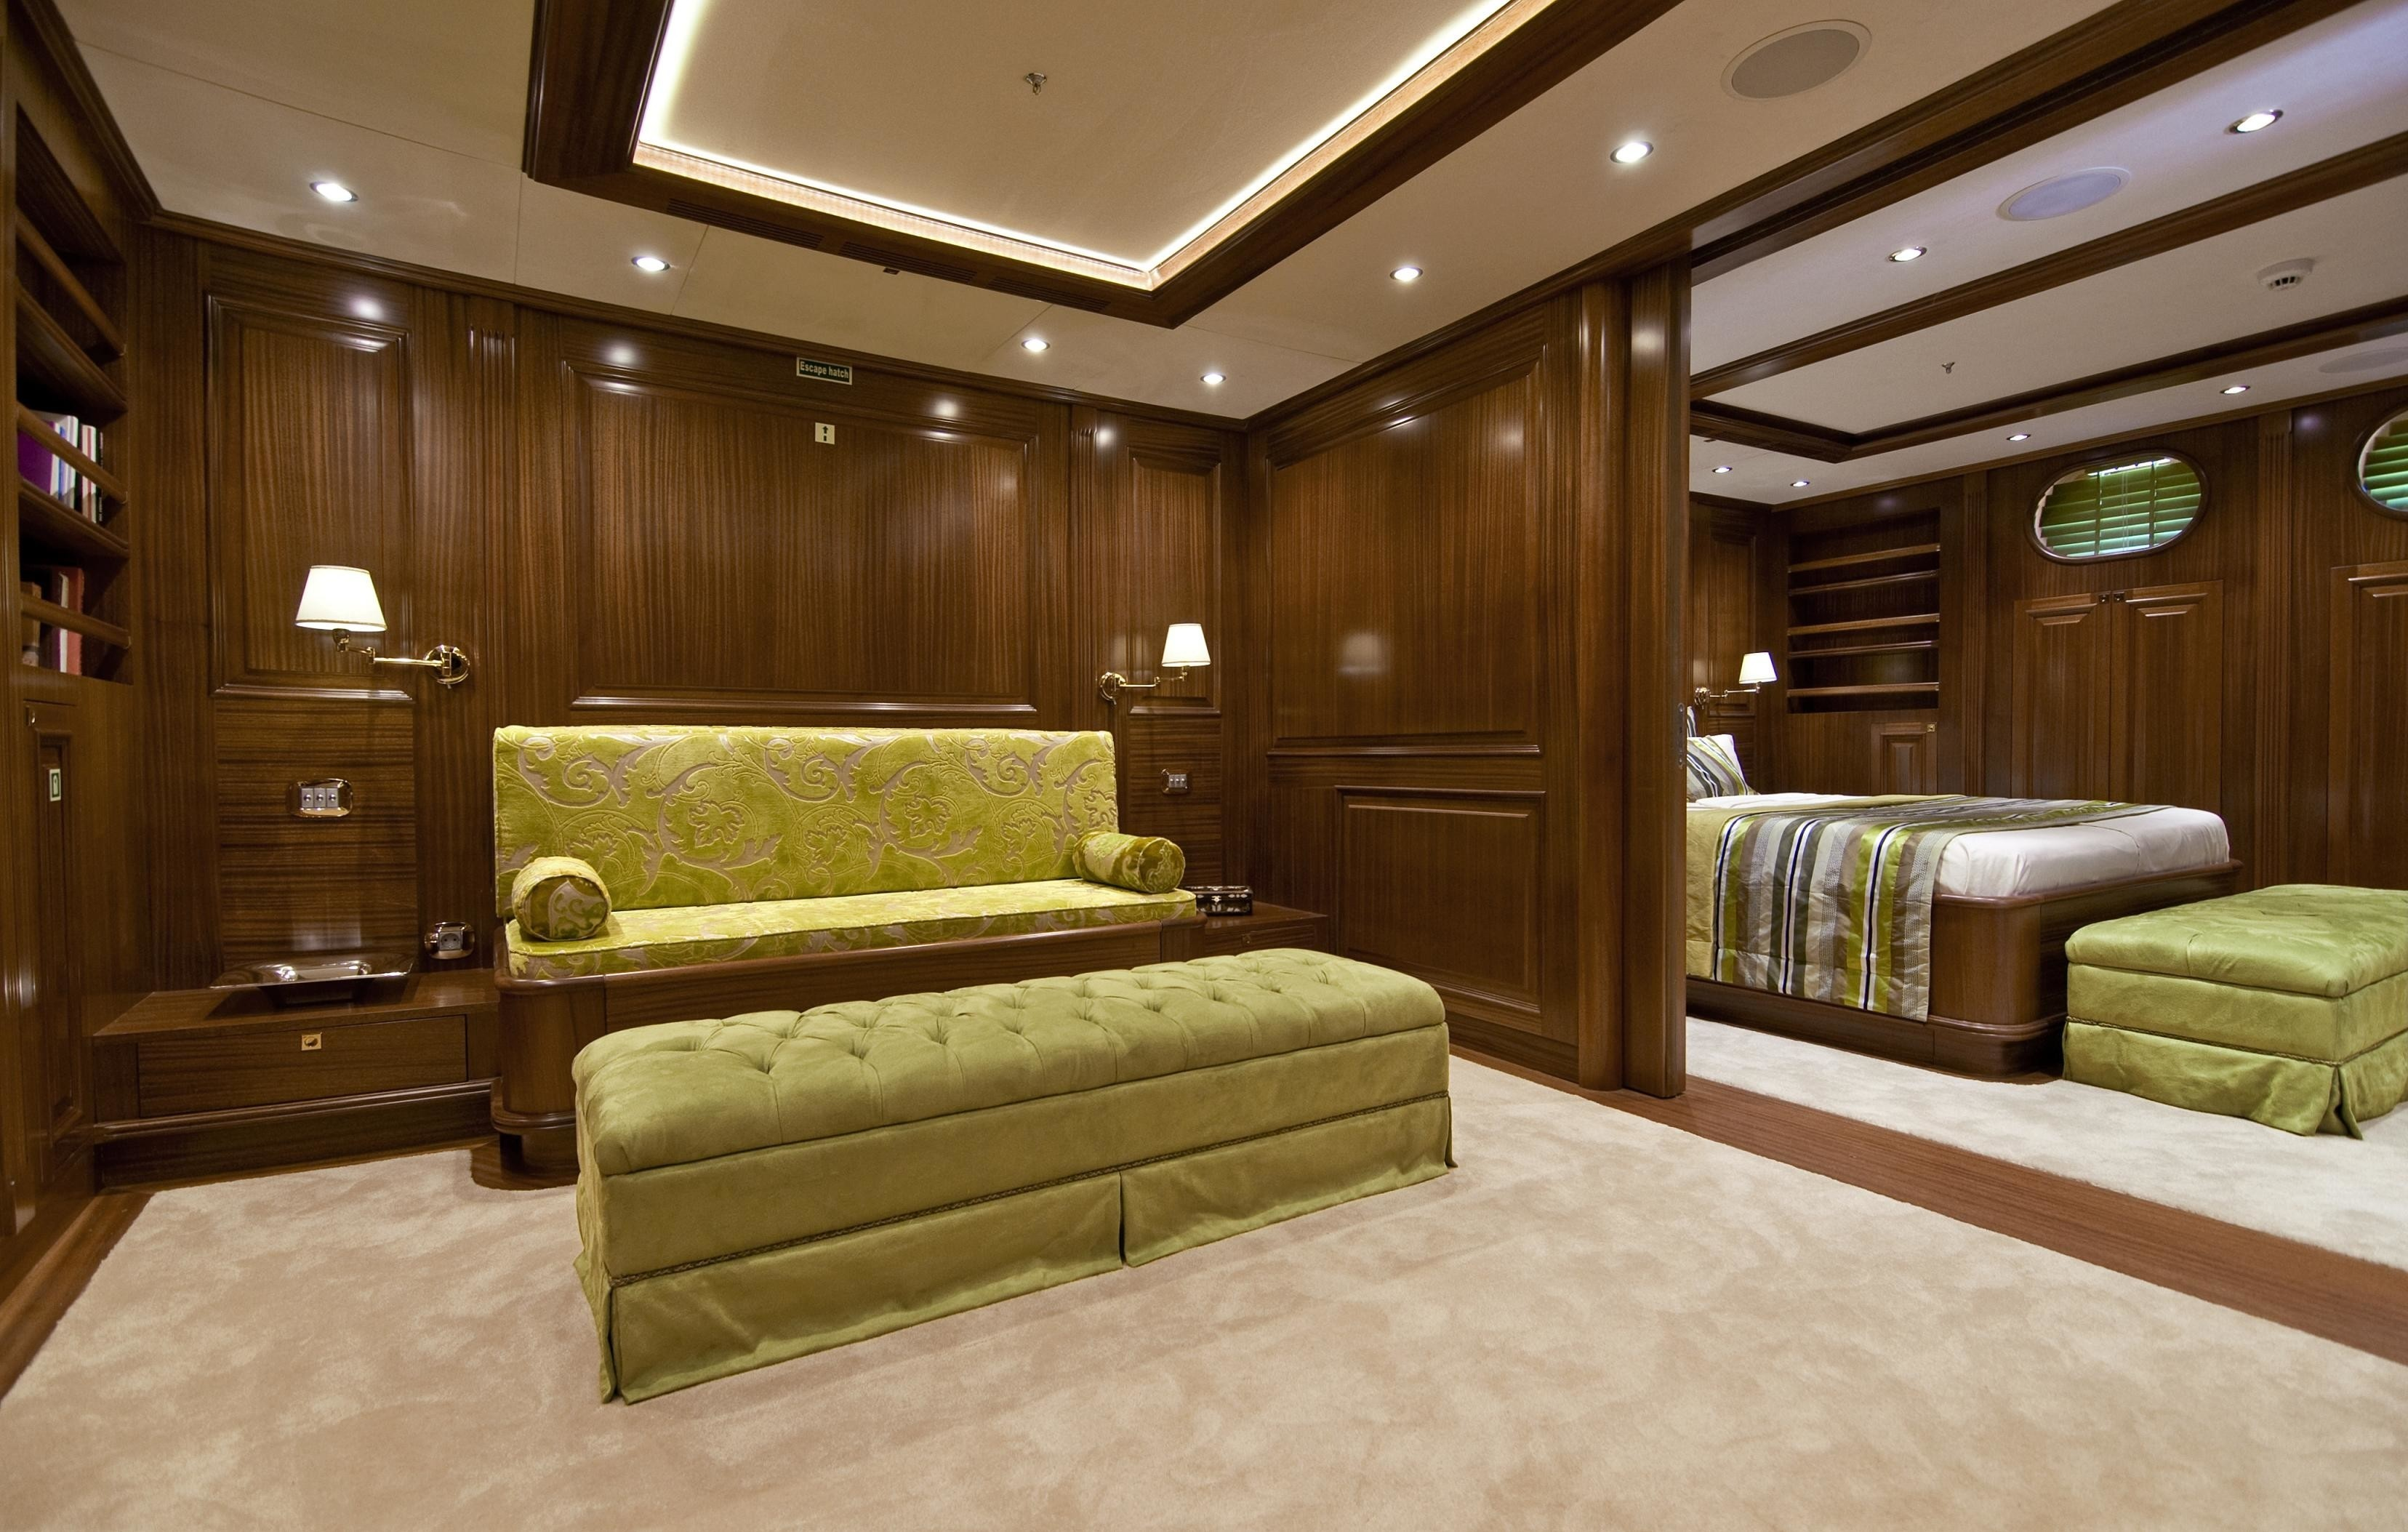 Sitting: Yacht CLEAR EYES's Guest's Cabin Captured